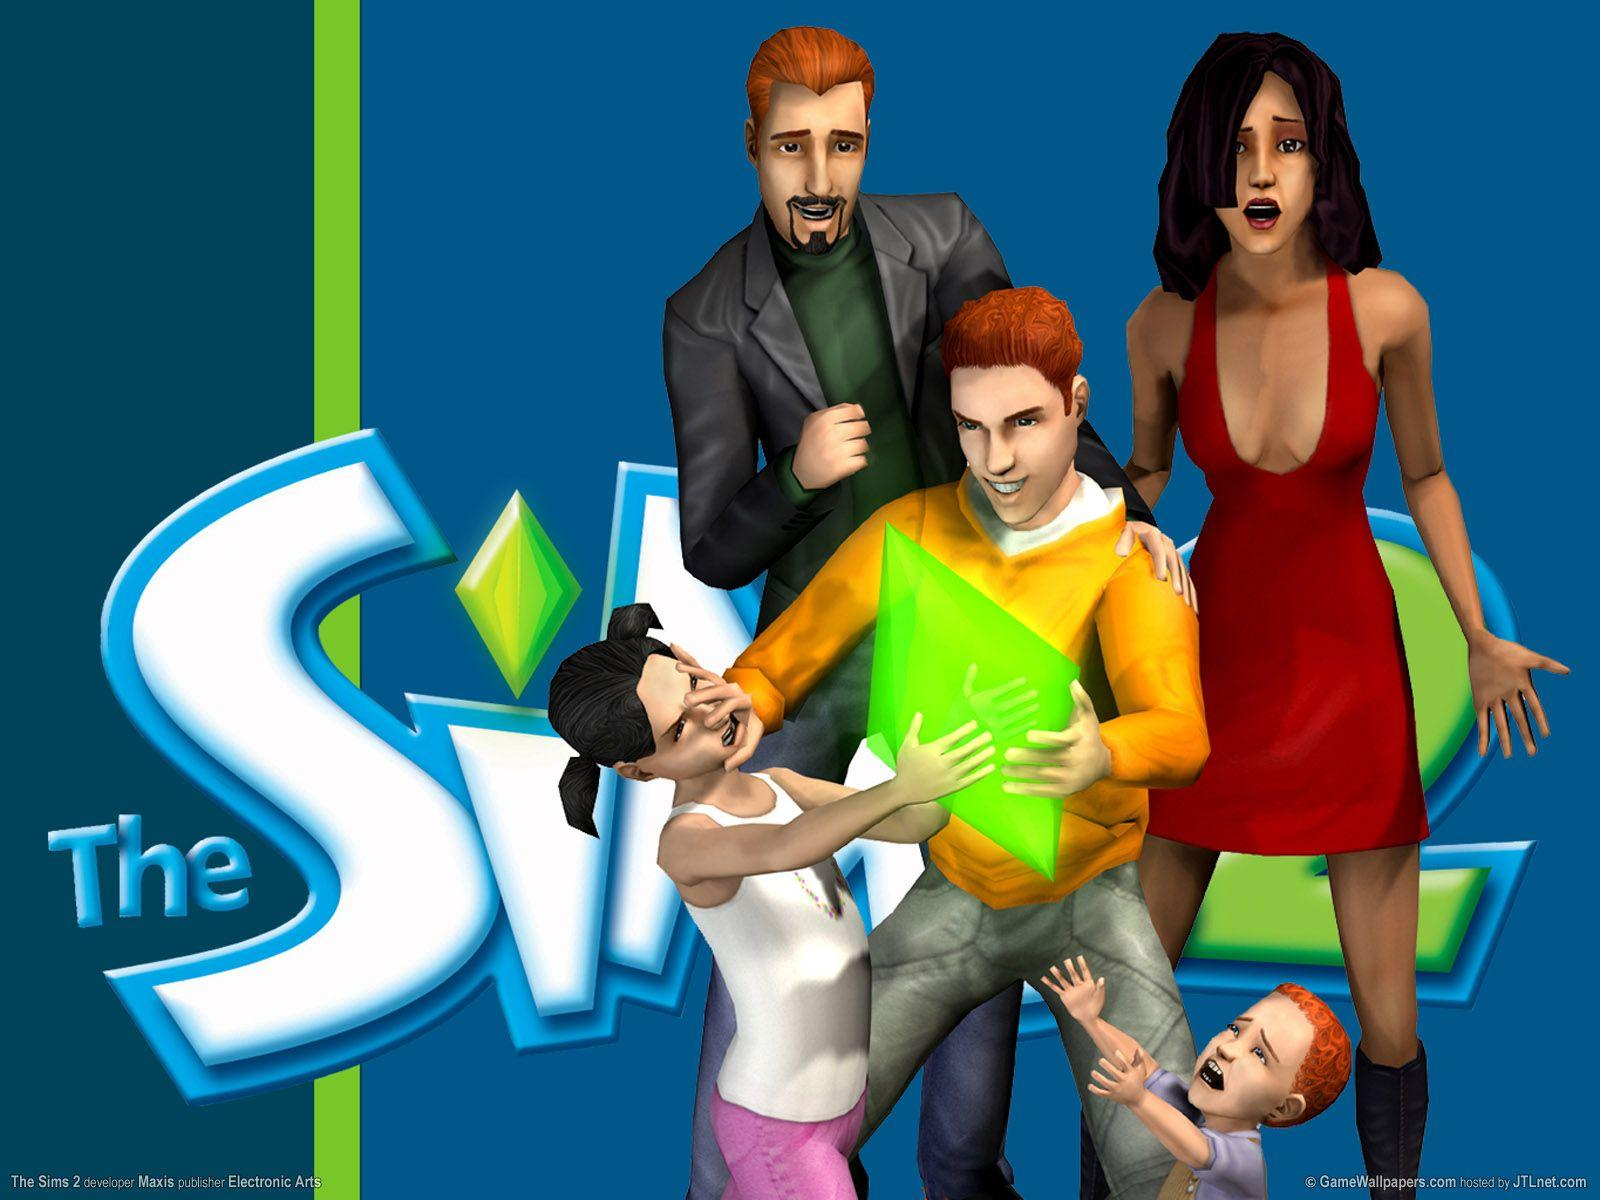 Wallpaper blue, The Sims 2, The Sims 2.